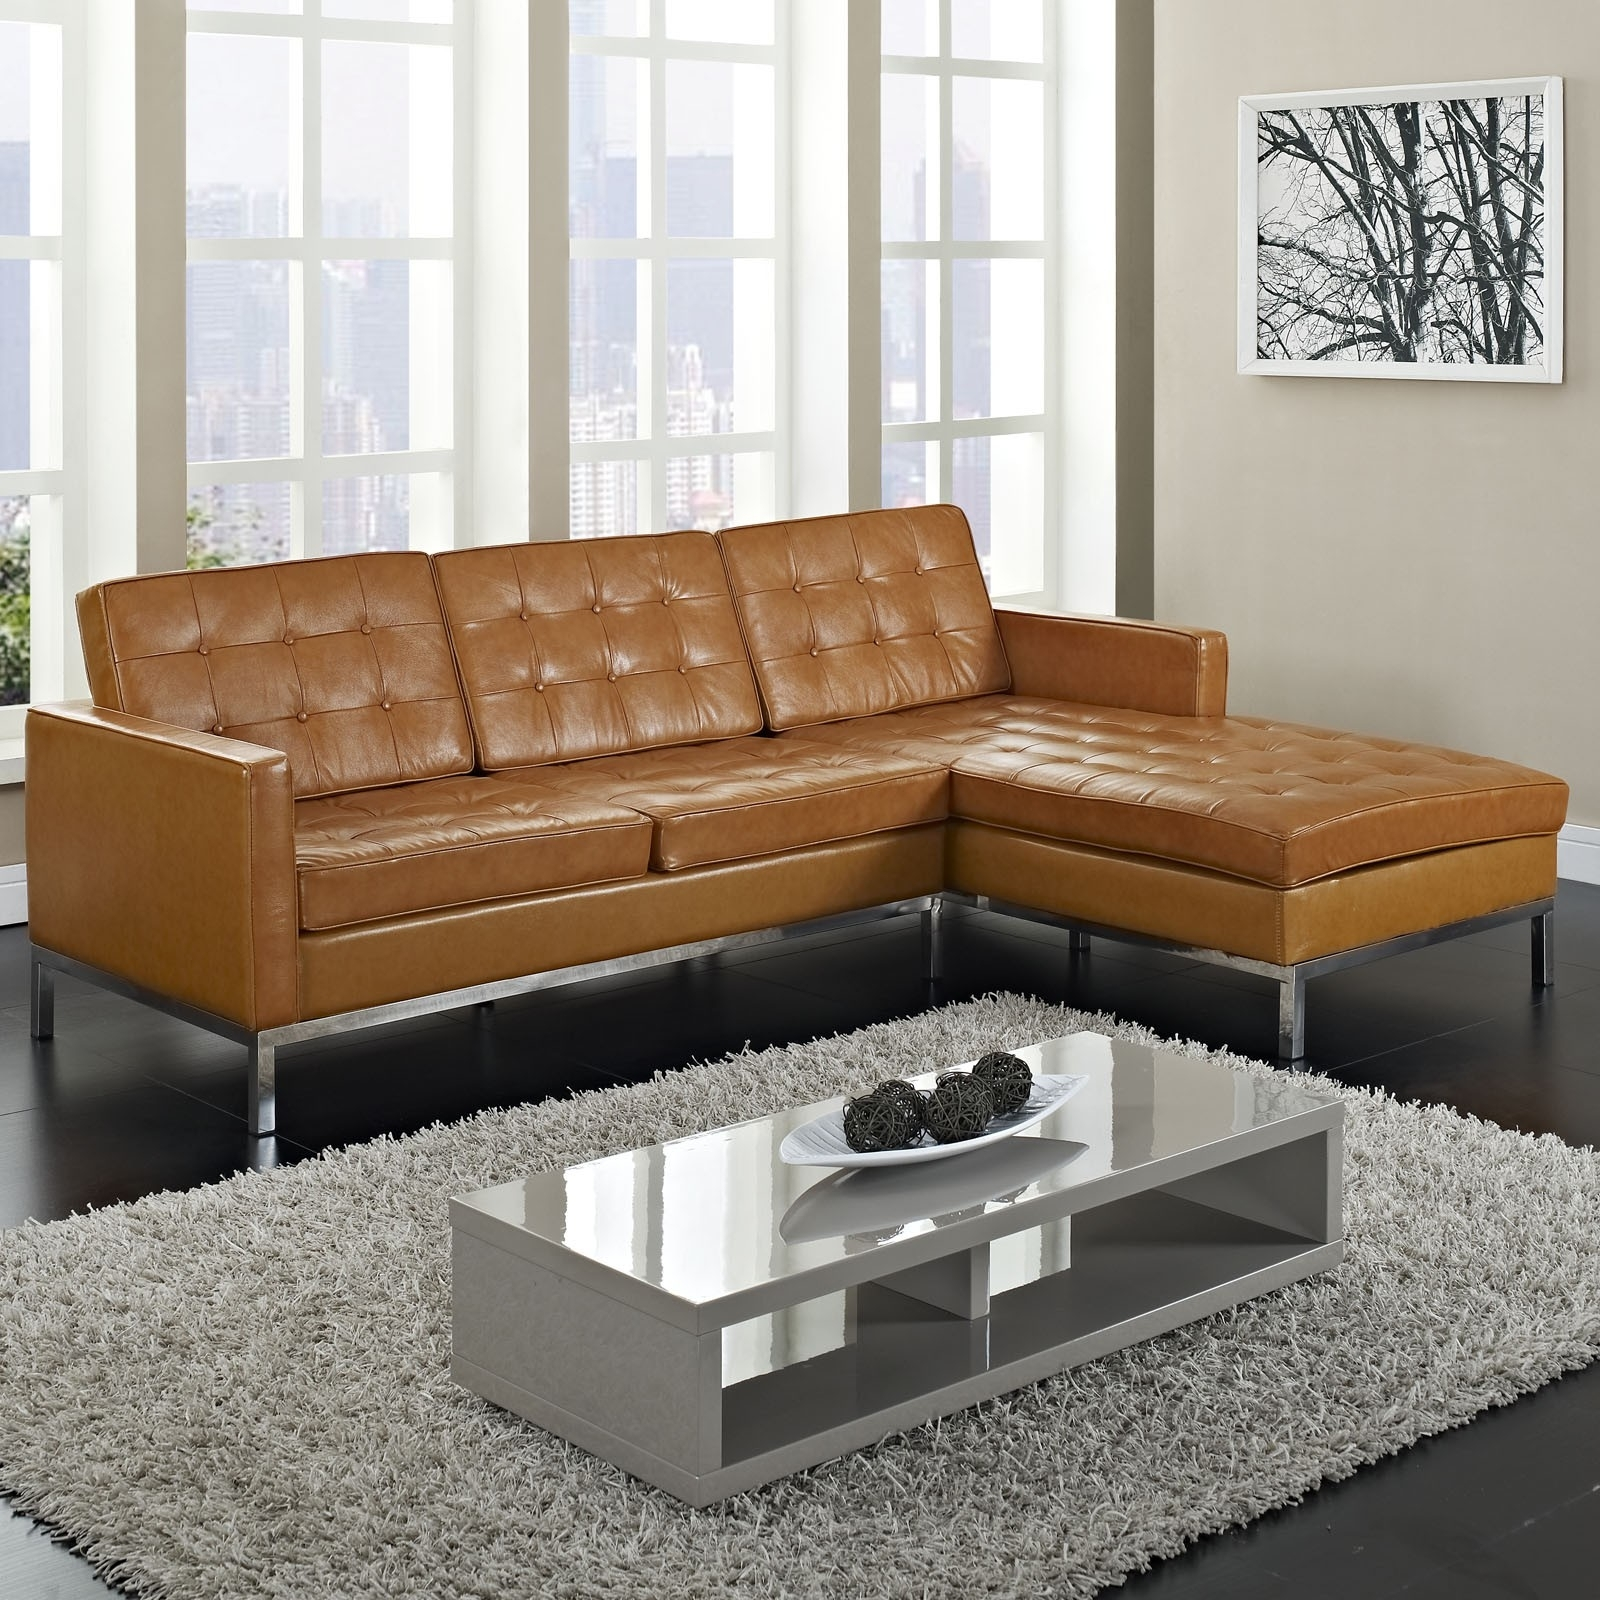 Furniture, Maximizing Small Living Room Spaces With 3 Piece Brown For Leather Sofas With Storage (View 10 of 10)